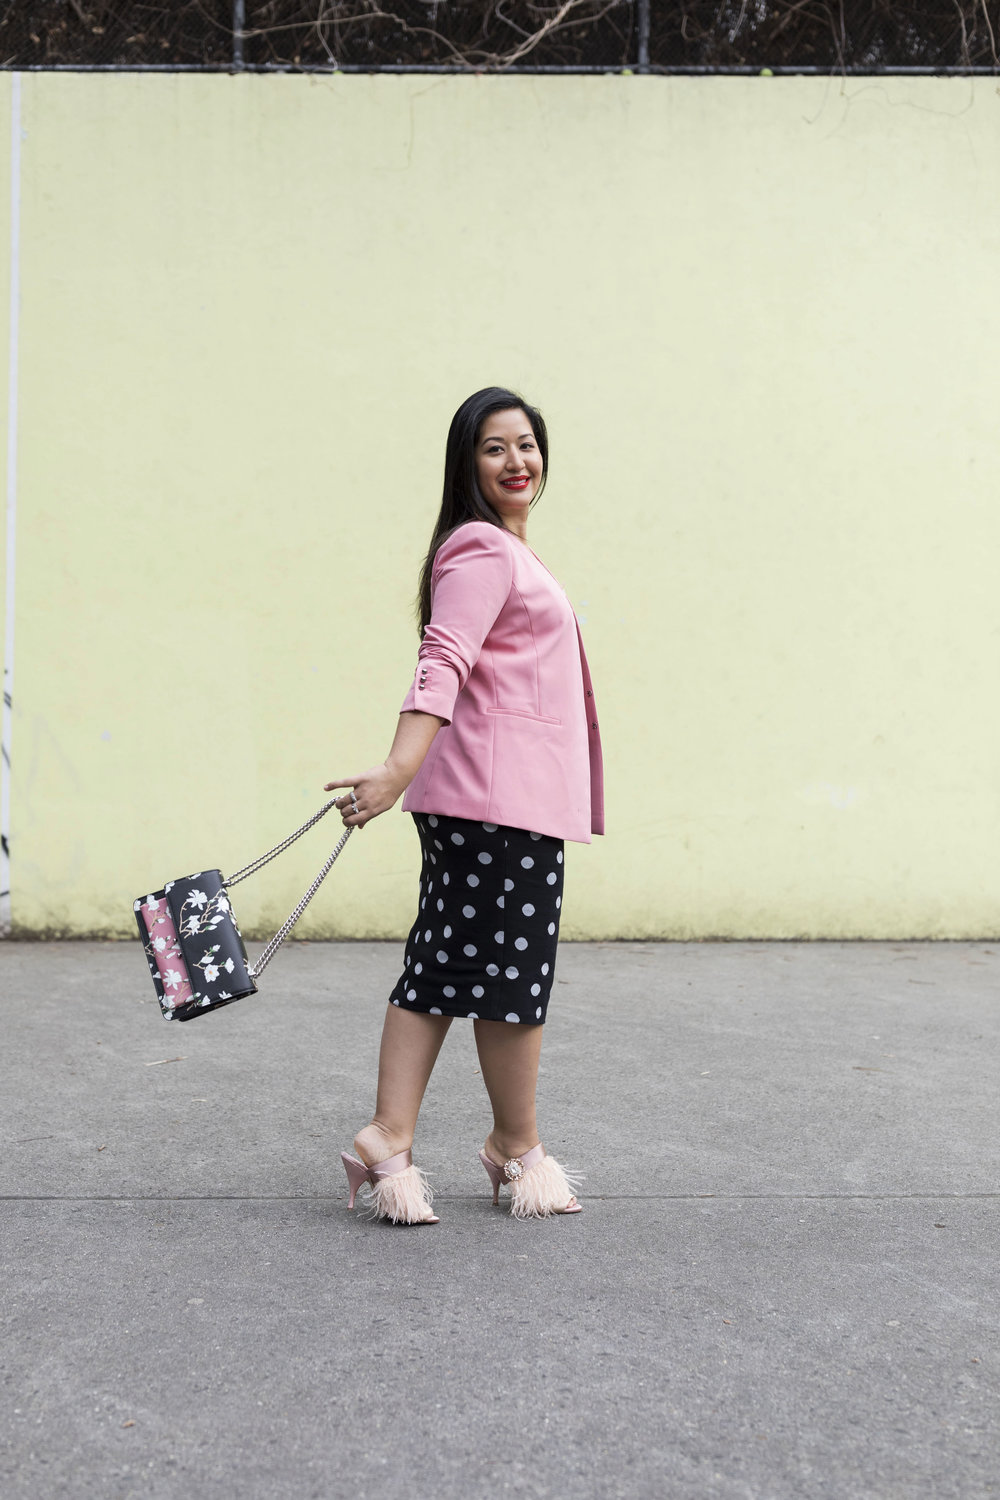 Krity S x Polka Dot and Pink Work Outfit6.jpg